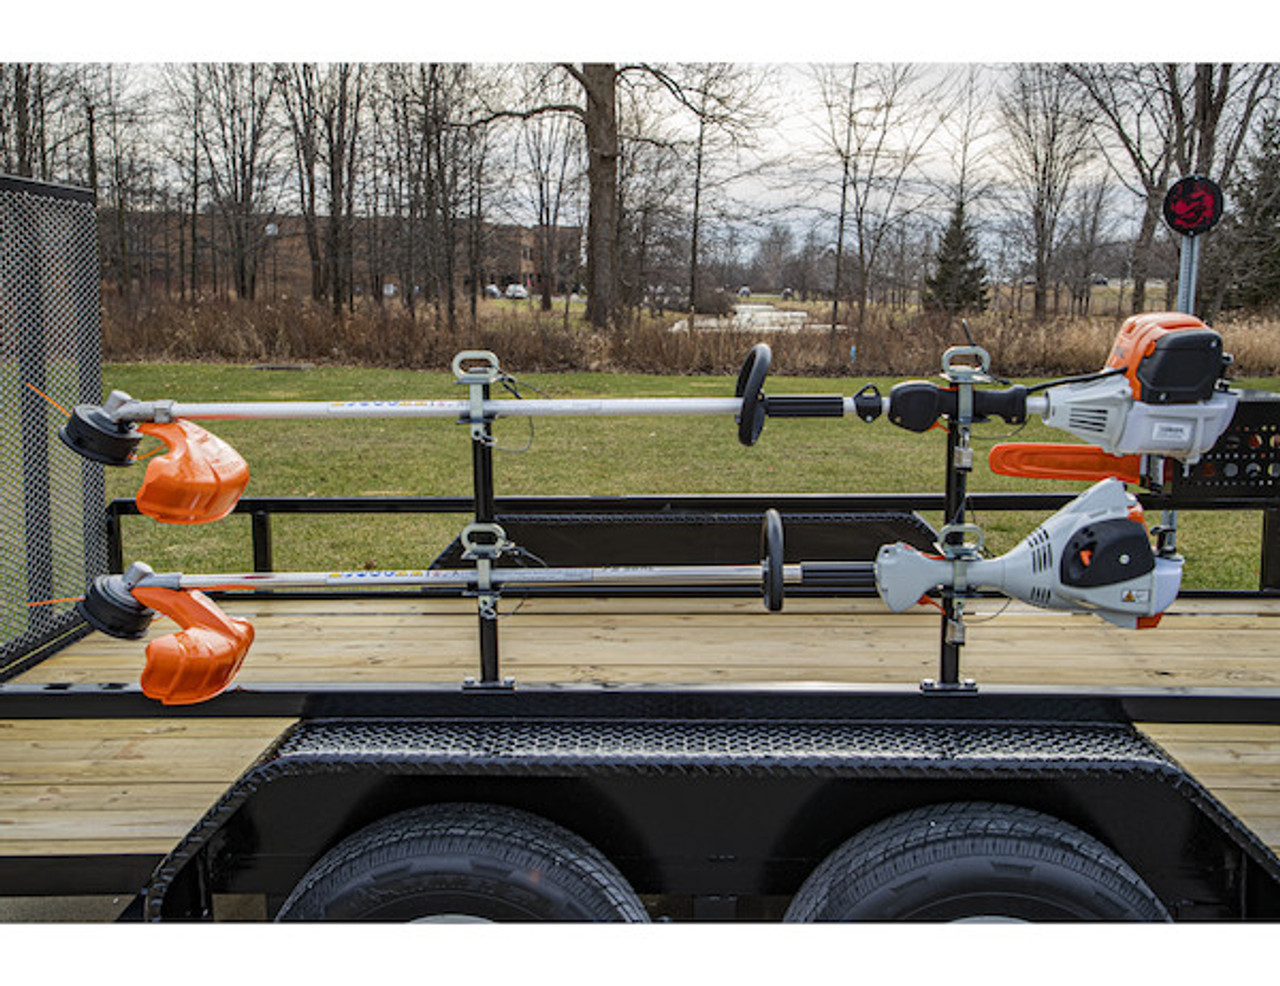 Buyers LT18 Lockable Trimmer Rack Carrier Holder for Up to 2 Trimmers for Trailers and Trucks Picture # 2